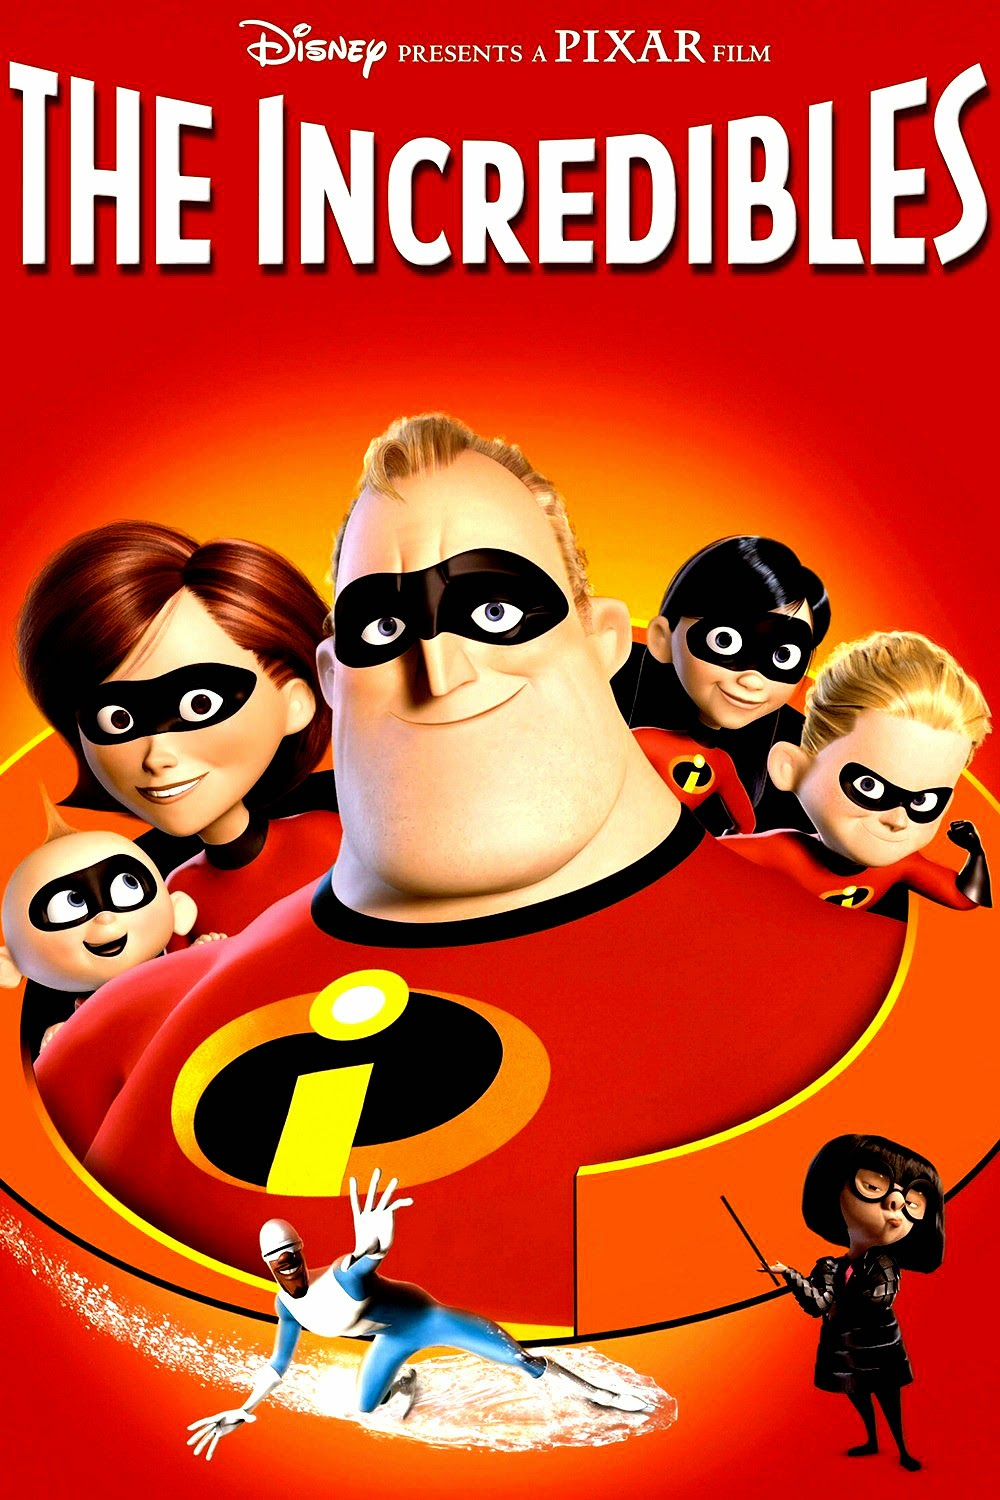 The incredibles movie free online